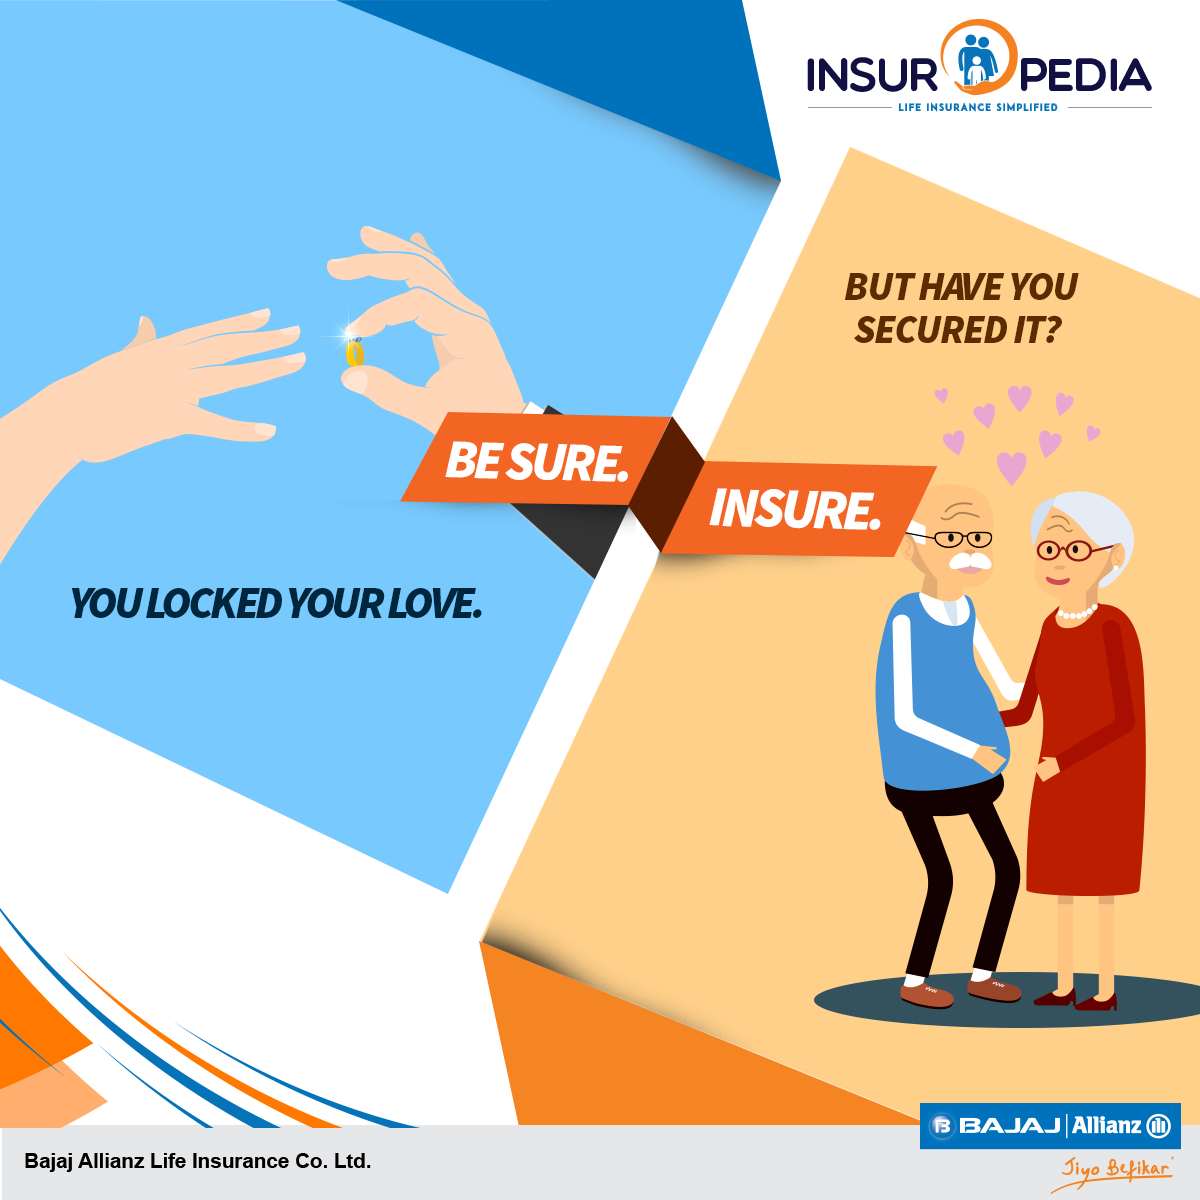 Some love stories are secured forever. Be Sure. Insure